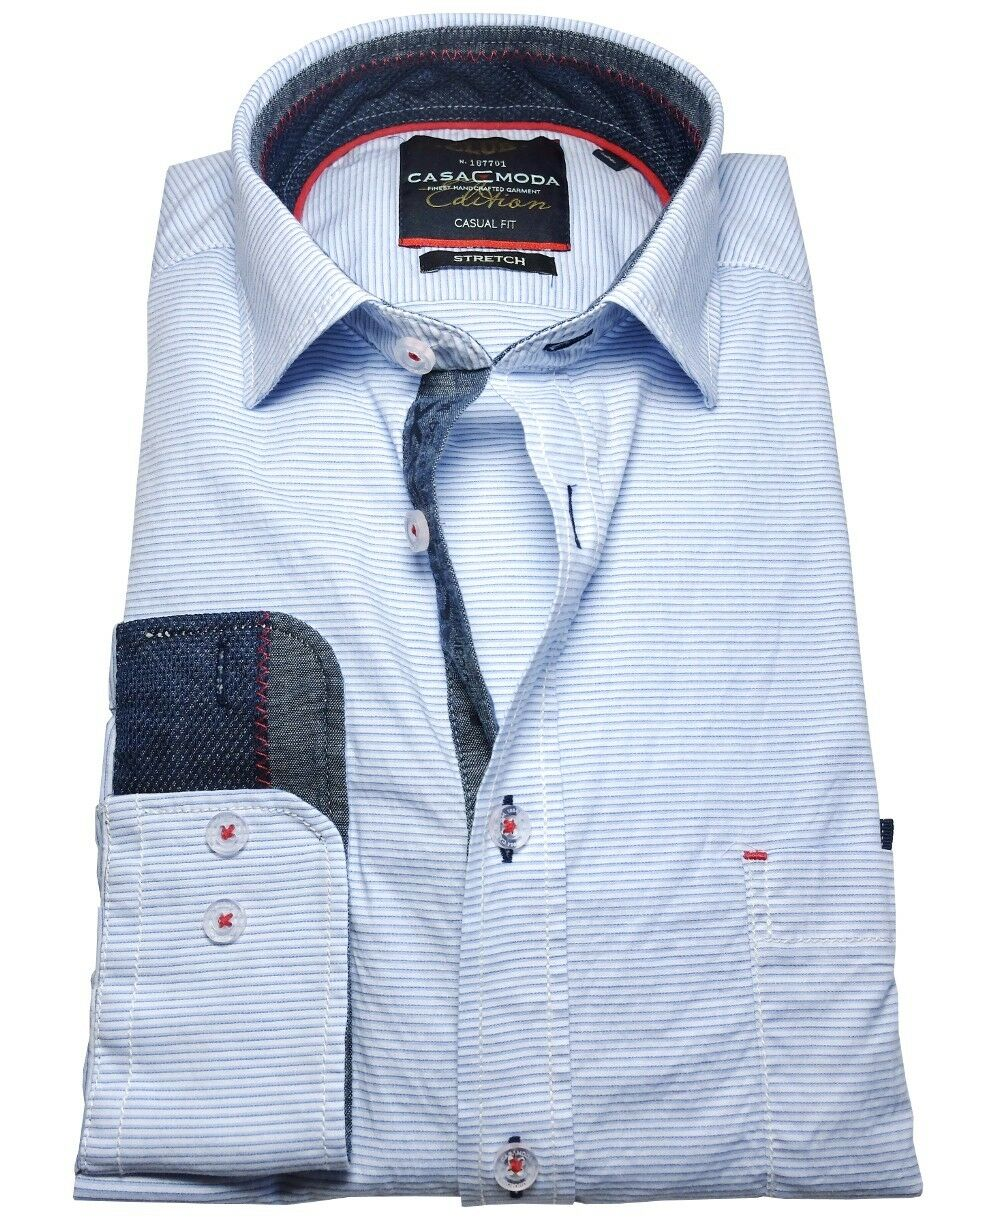 Casa Moda Club Edition Stretch Langarmhemd hellblue blue quergestreift Gr. M-7XL